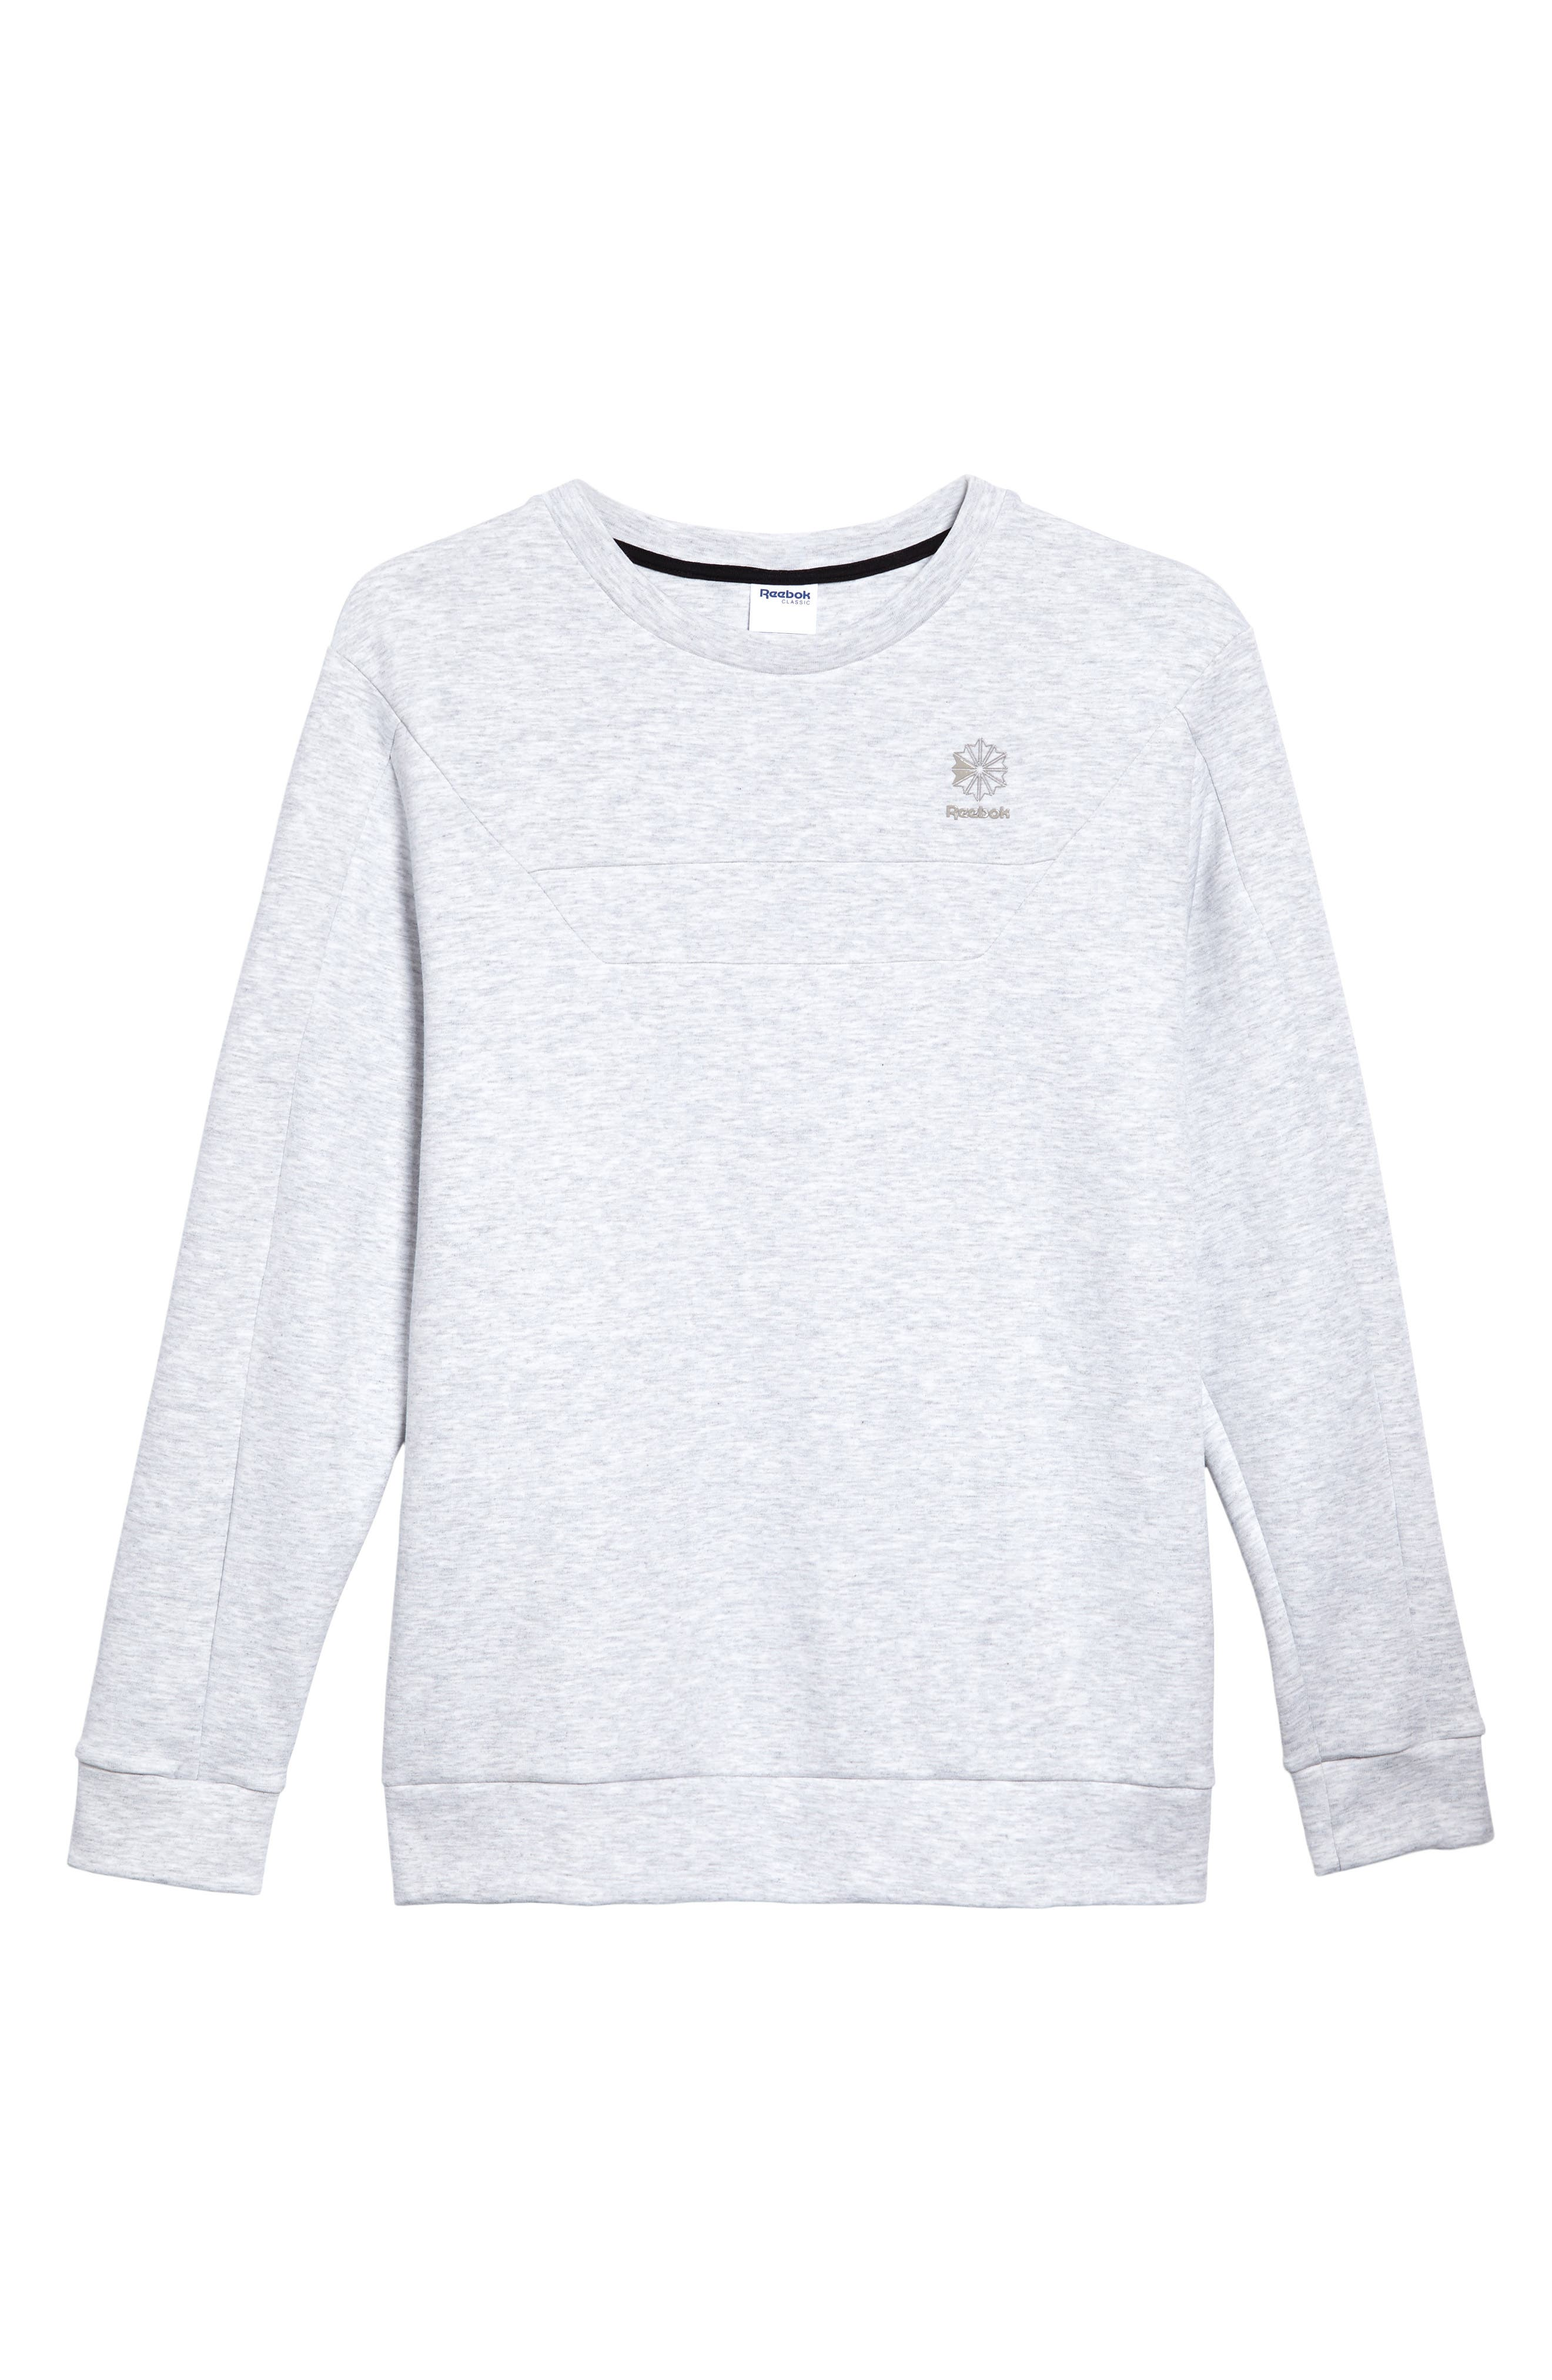 Double Sweatshirt,                             Alternate thumbnail 6, color,                             Light Grey Heather